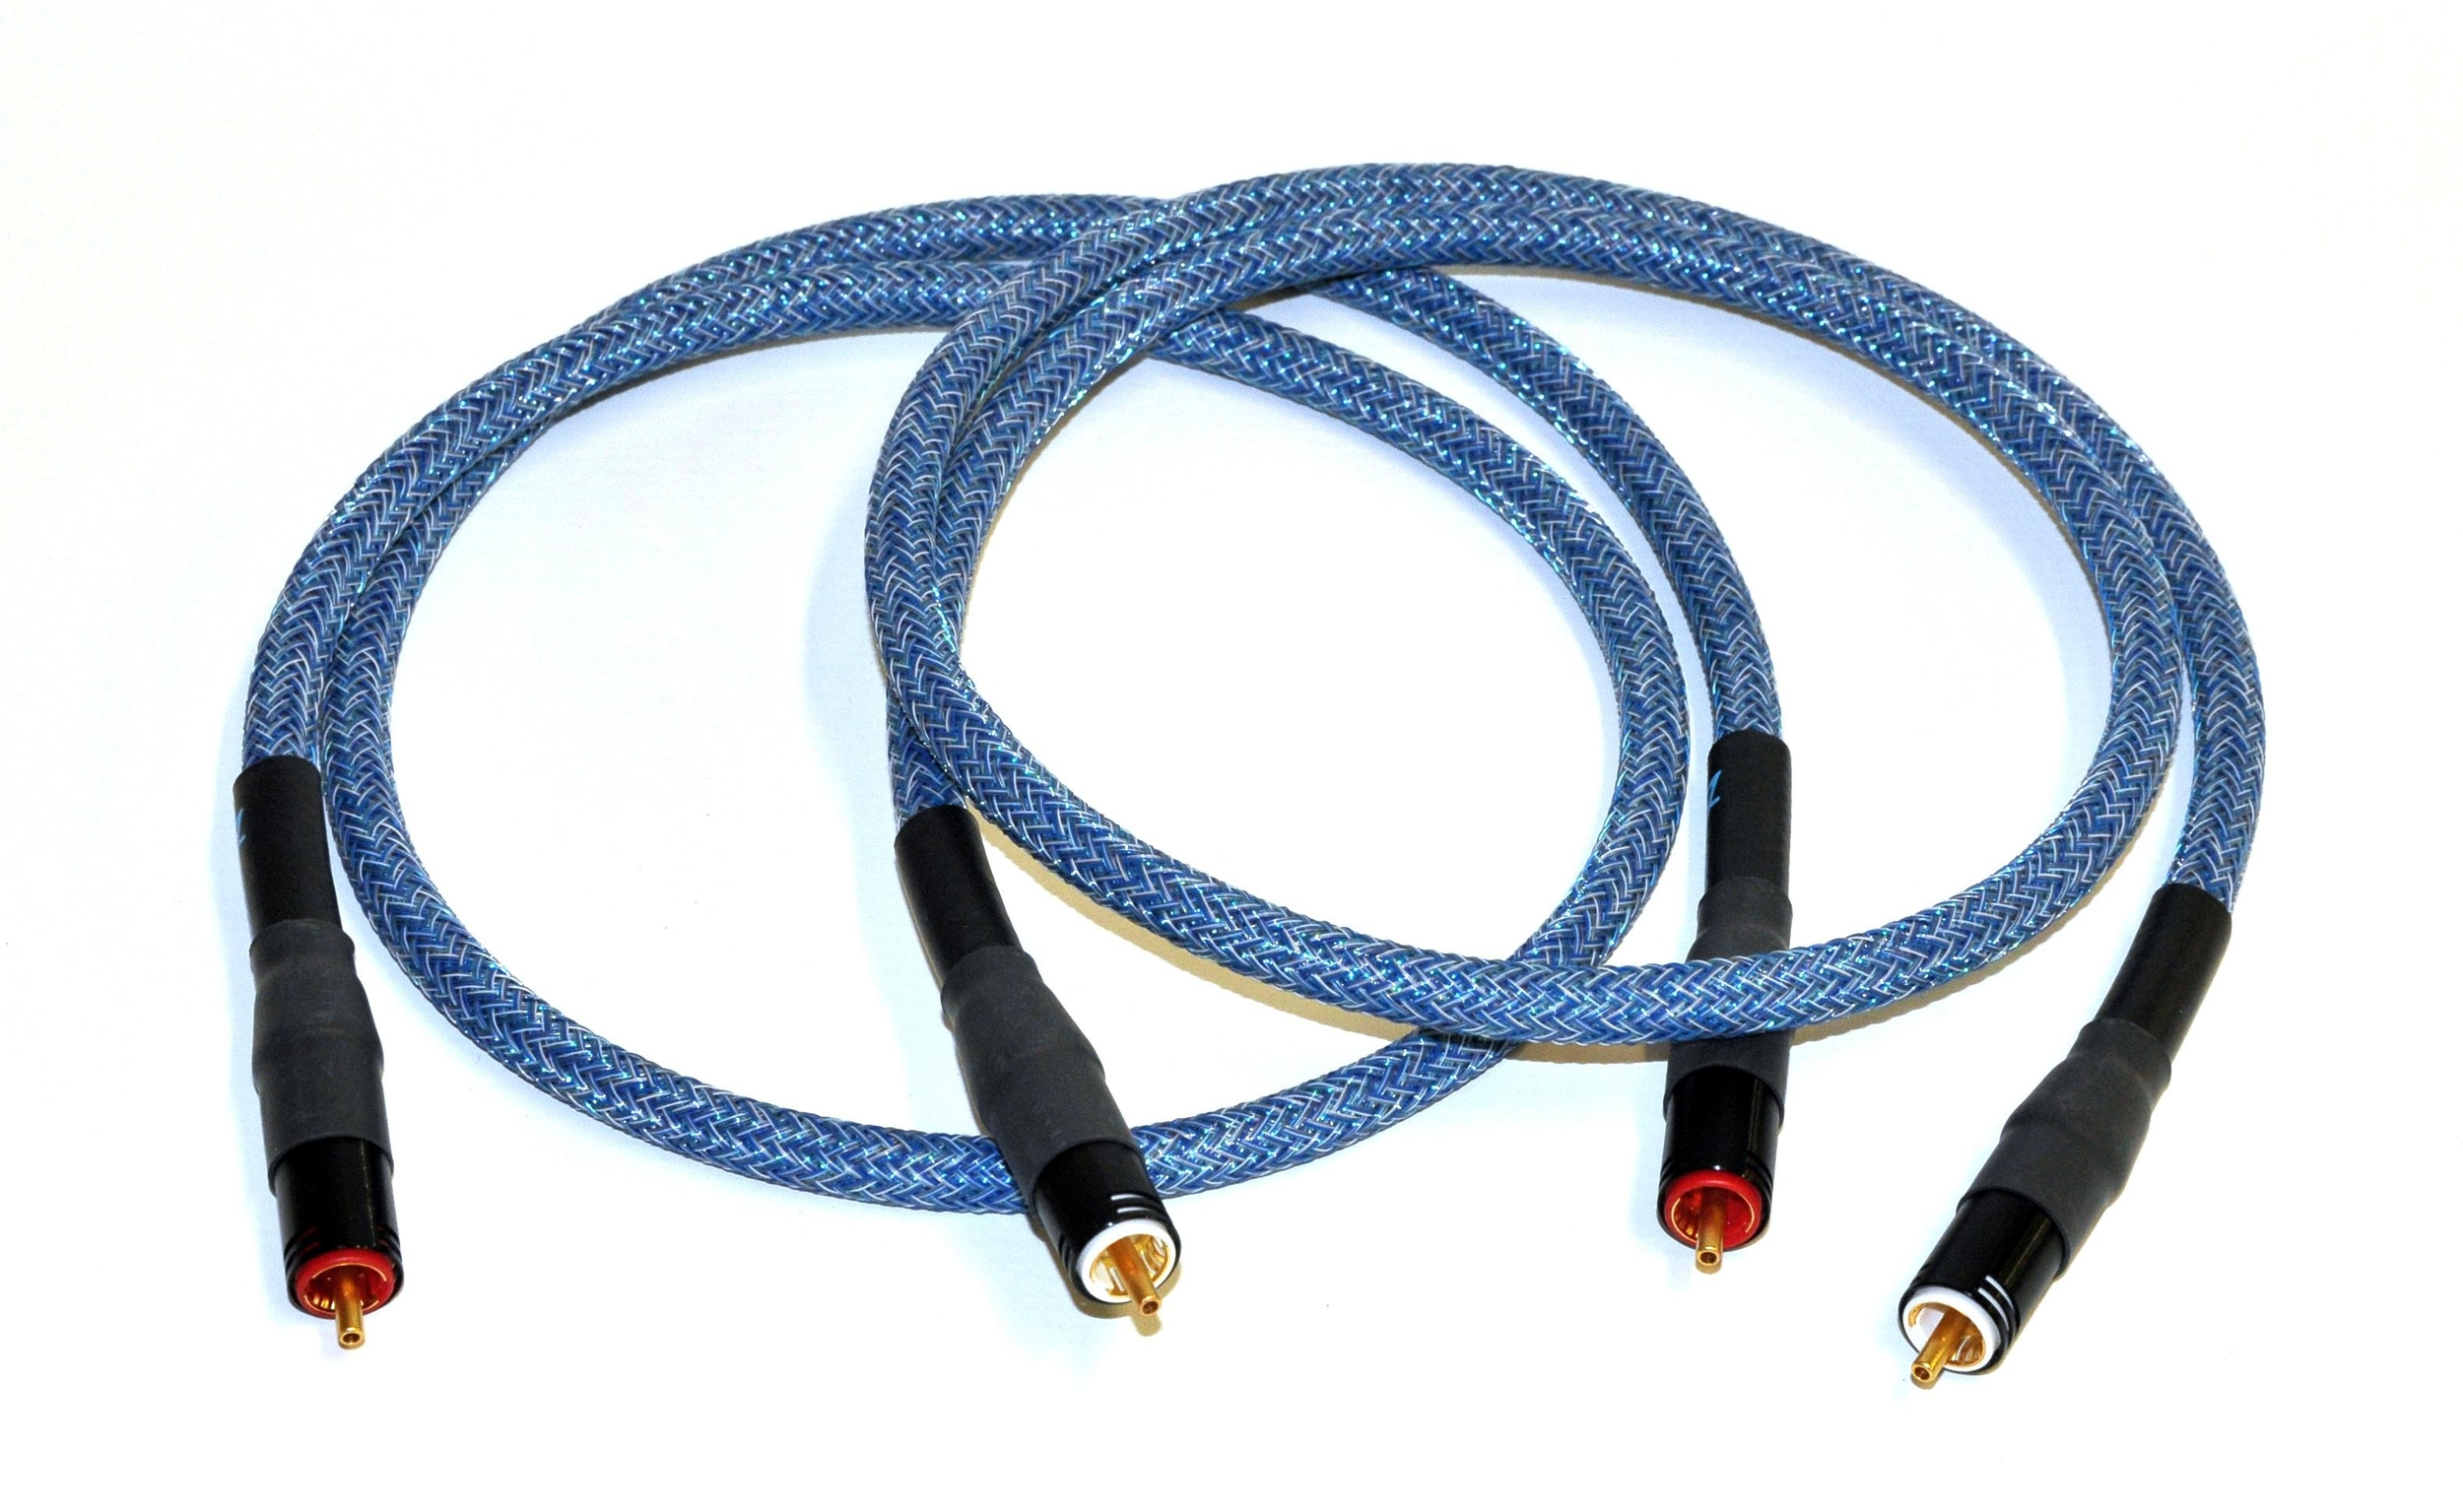 Leema's own cable range - New audio cable range launches